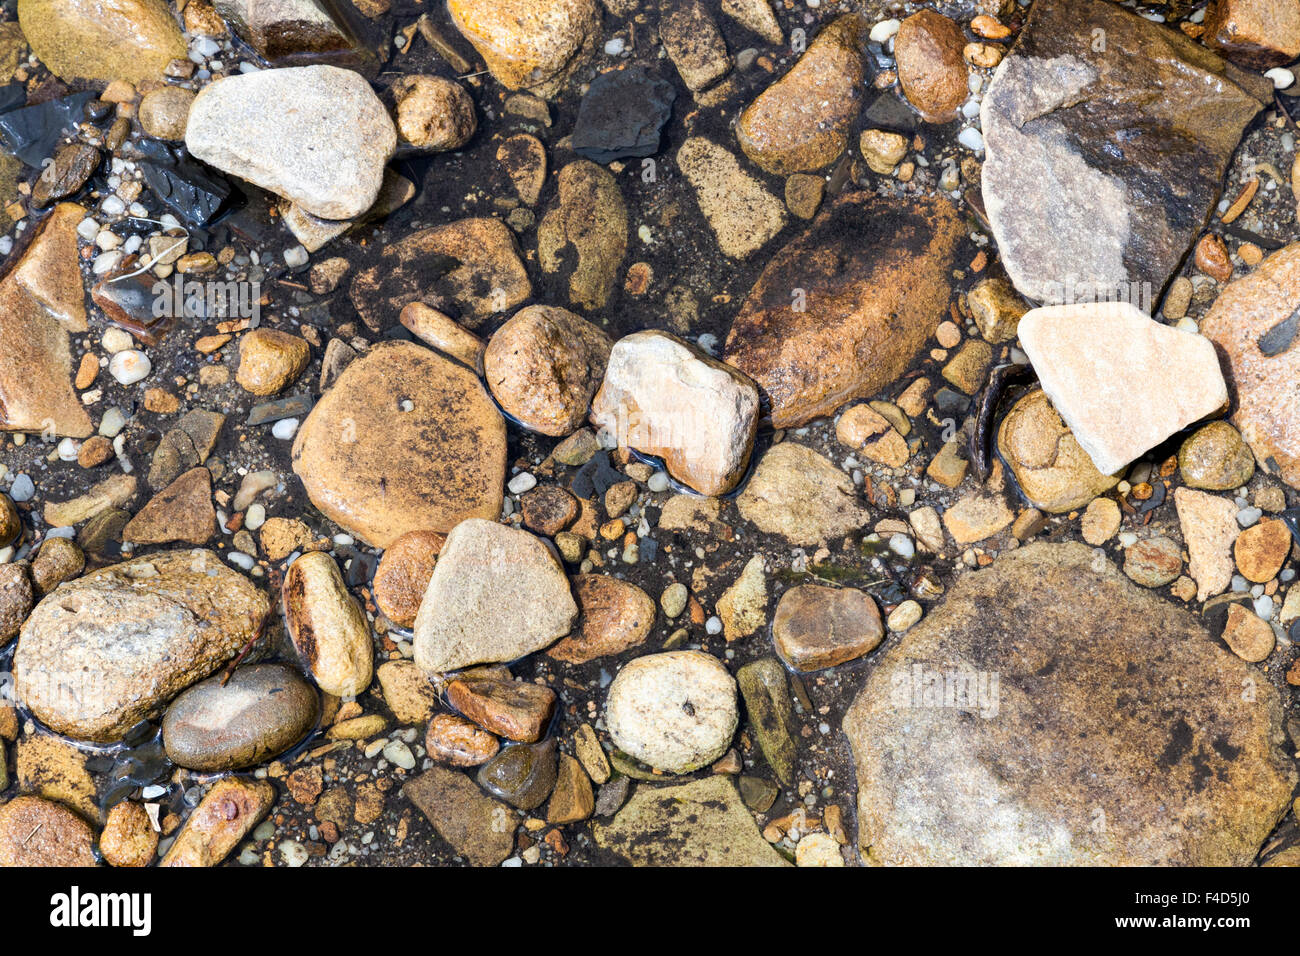 Pebbles and stones at the edge of a stream - Stock Image